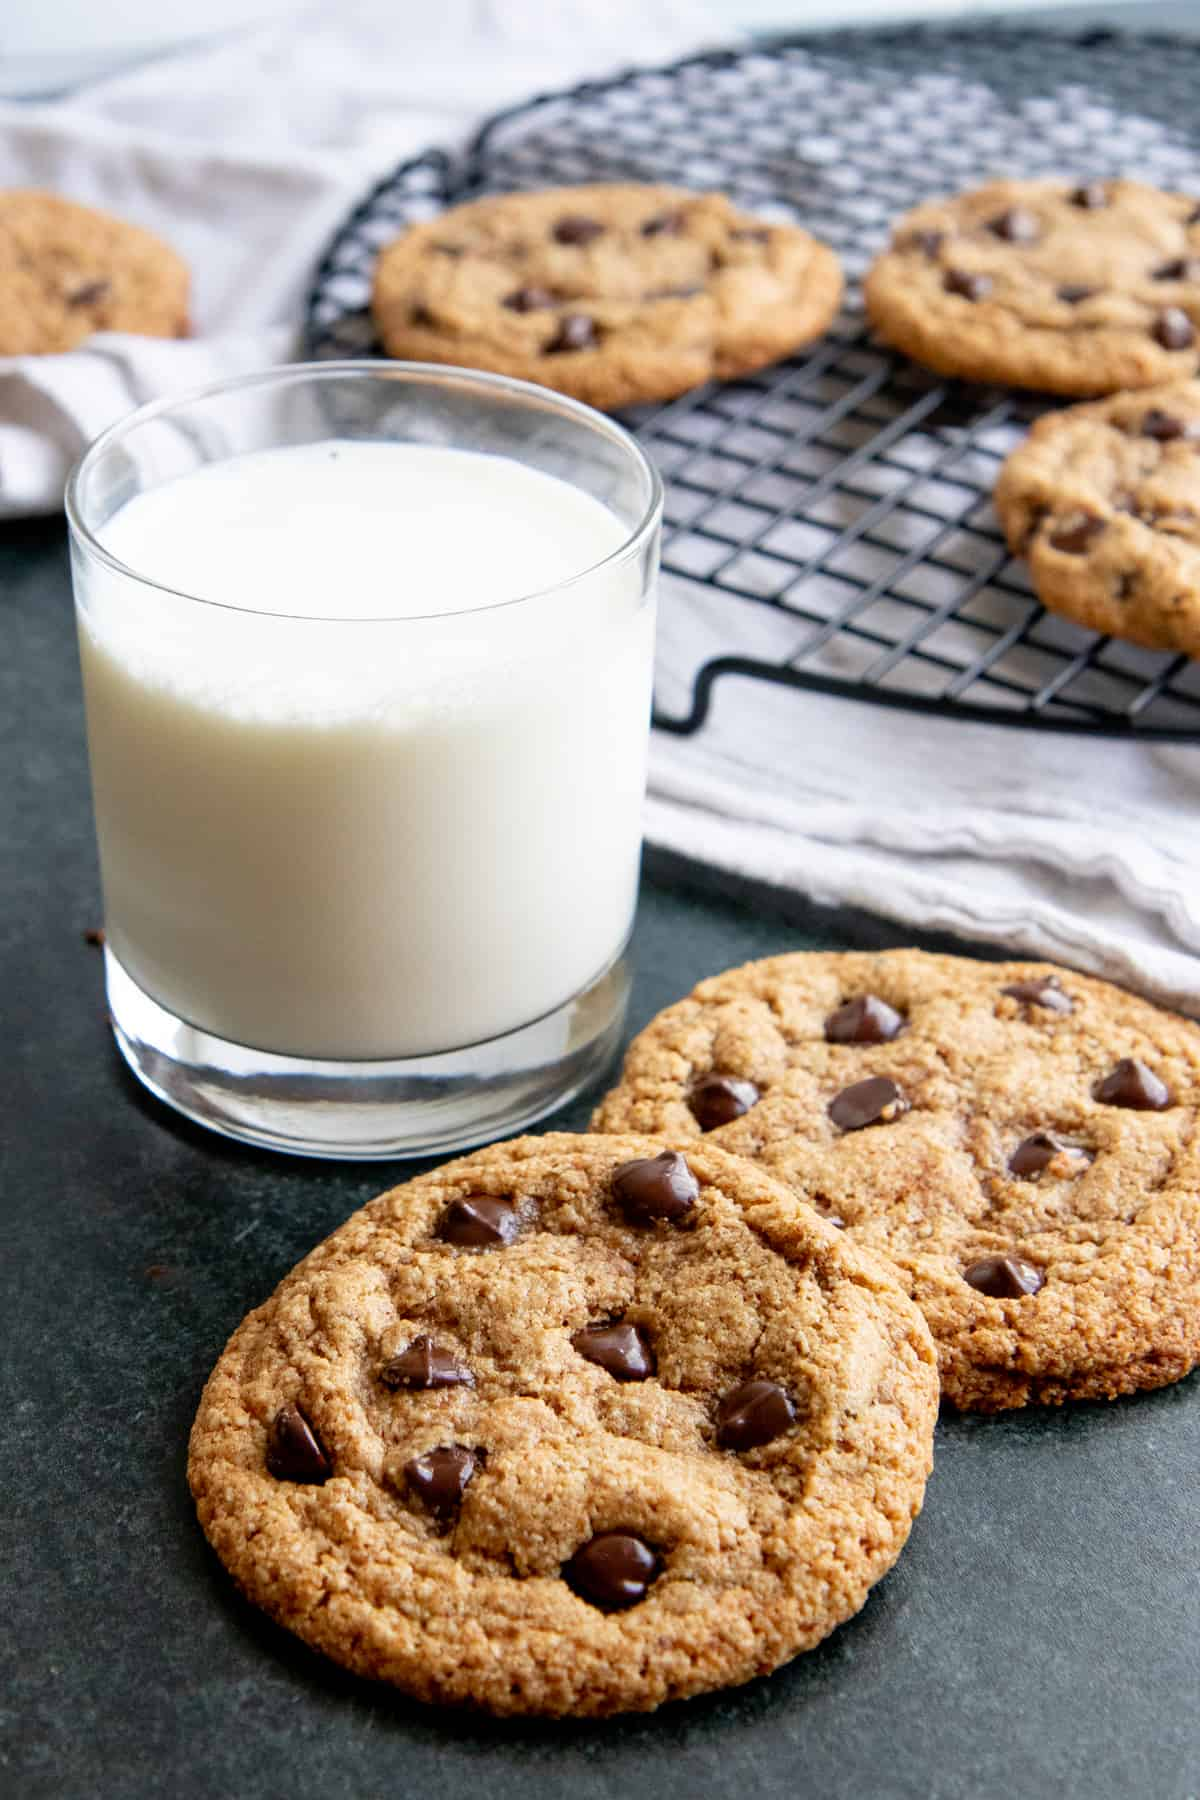 Two paleo chocolate cookies sit next to a glass of almond milk. A wire rack with more cookies is in the background.